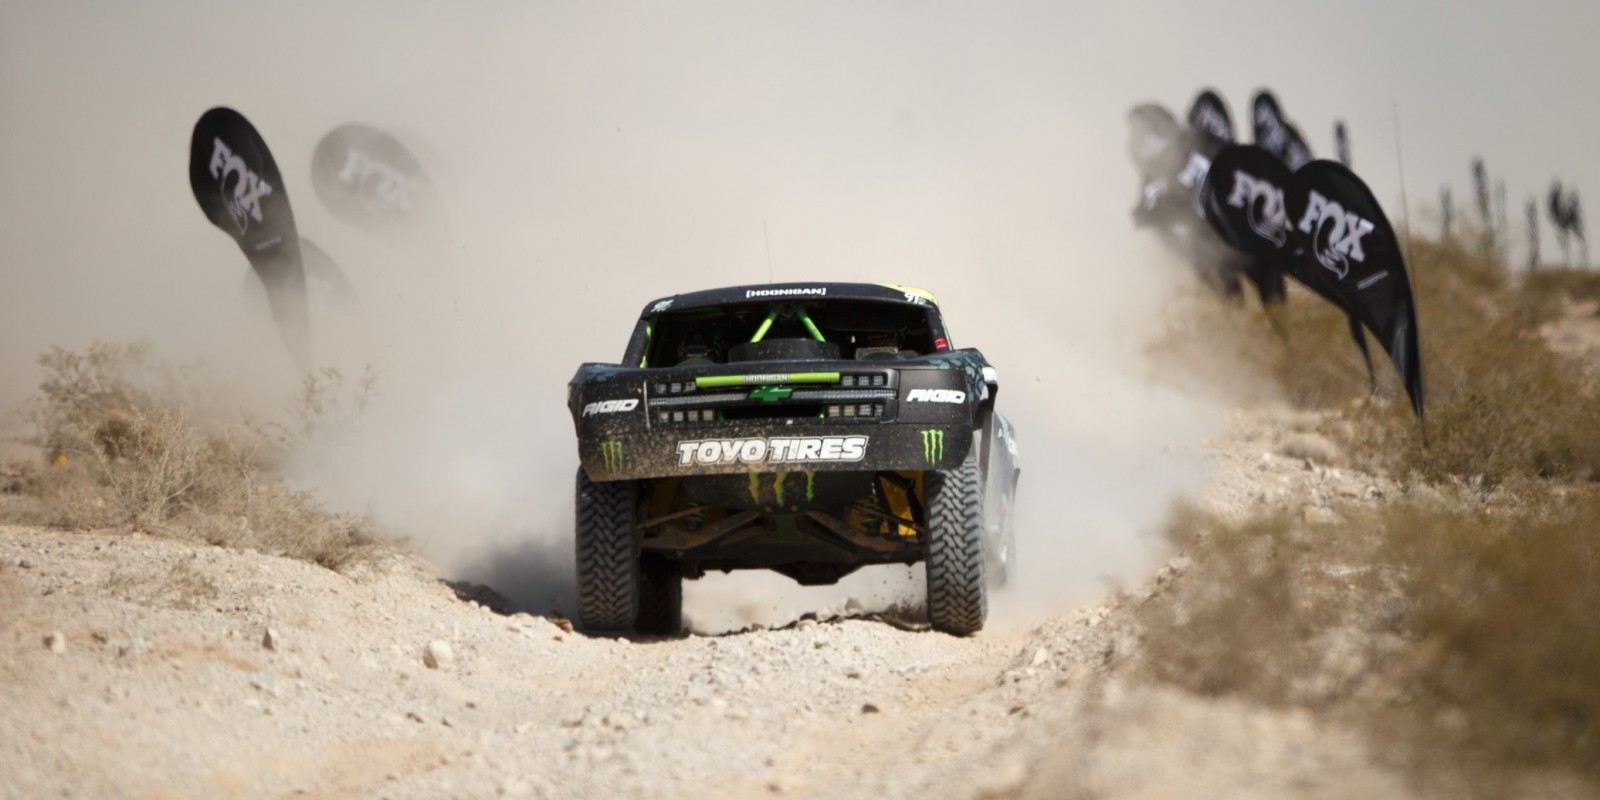 BJ Baldwin during the 2016 Mint Off Road race